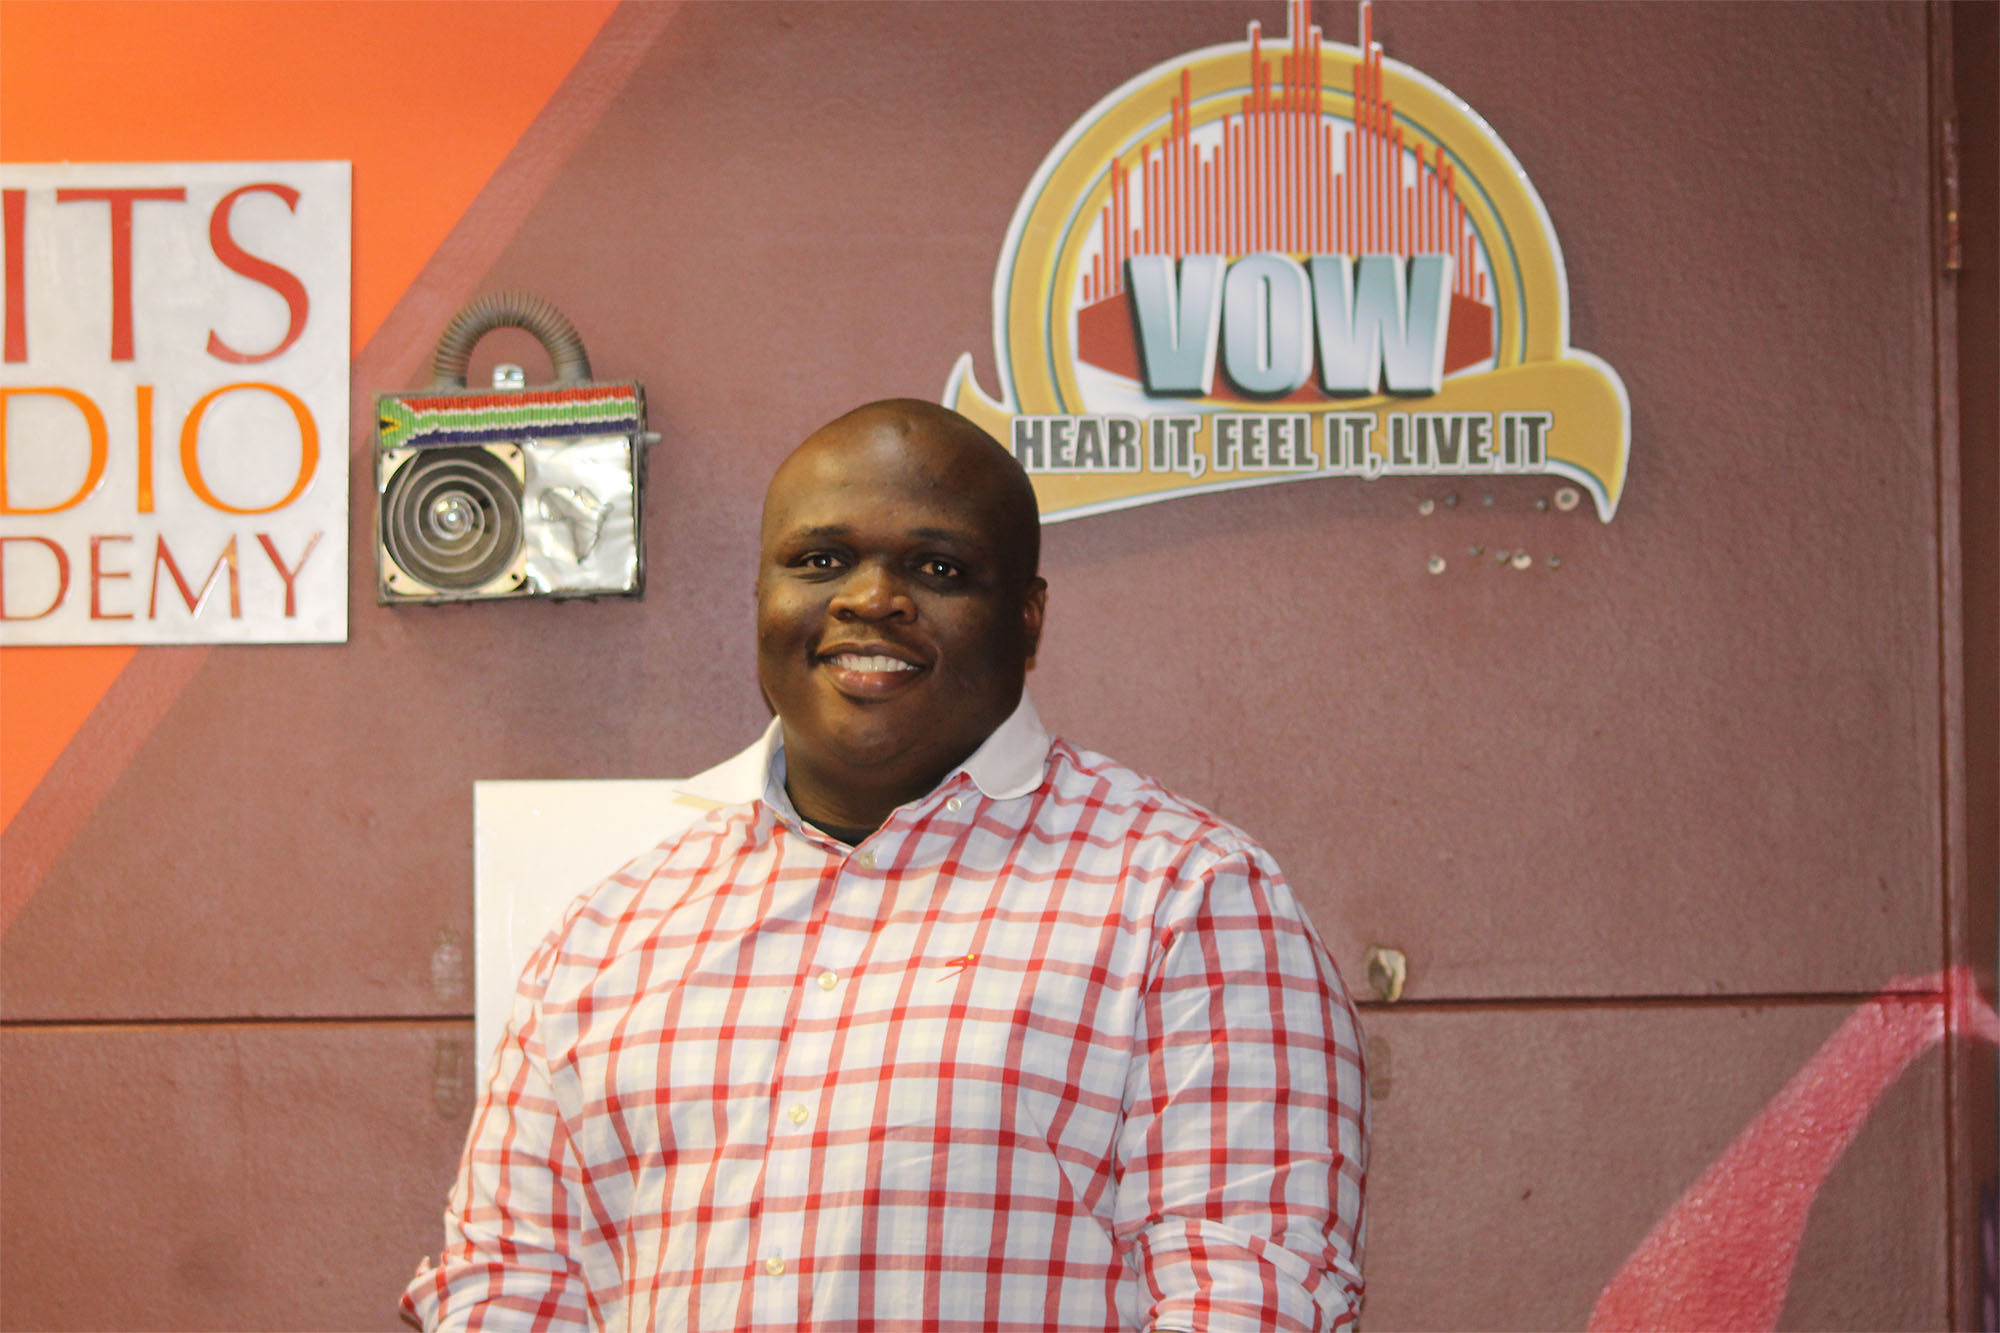 VoW FM welcomes new station manager